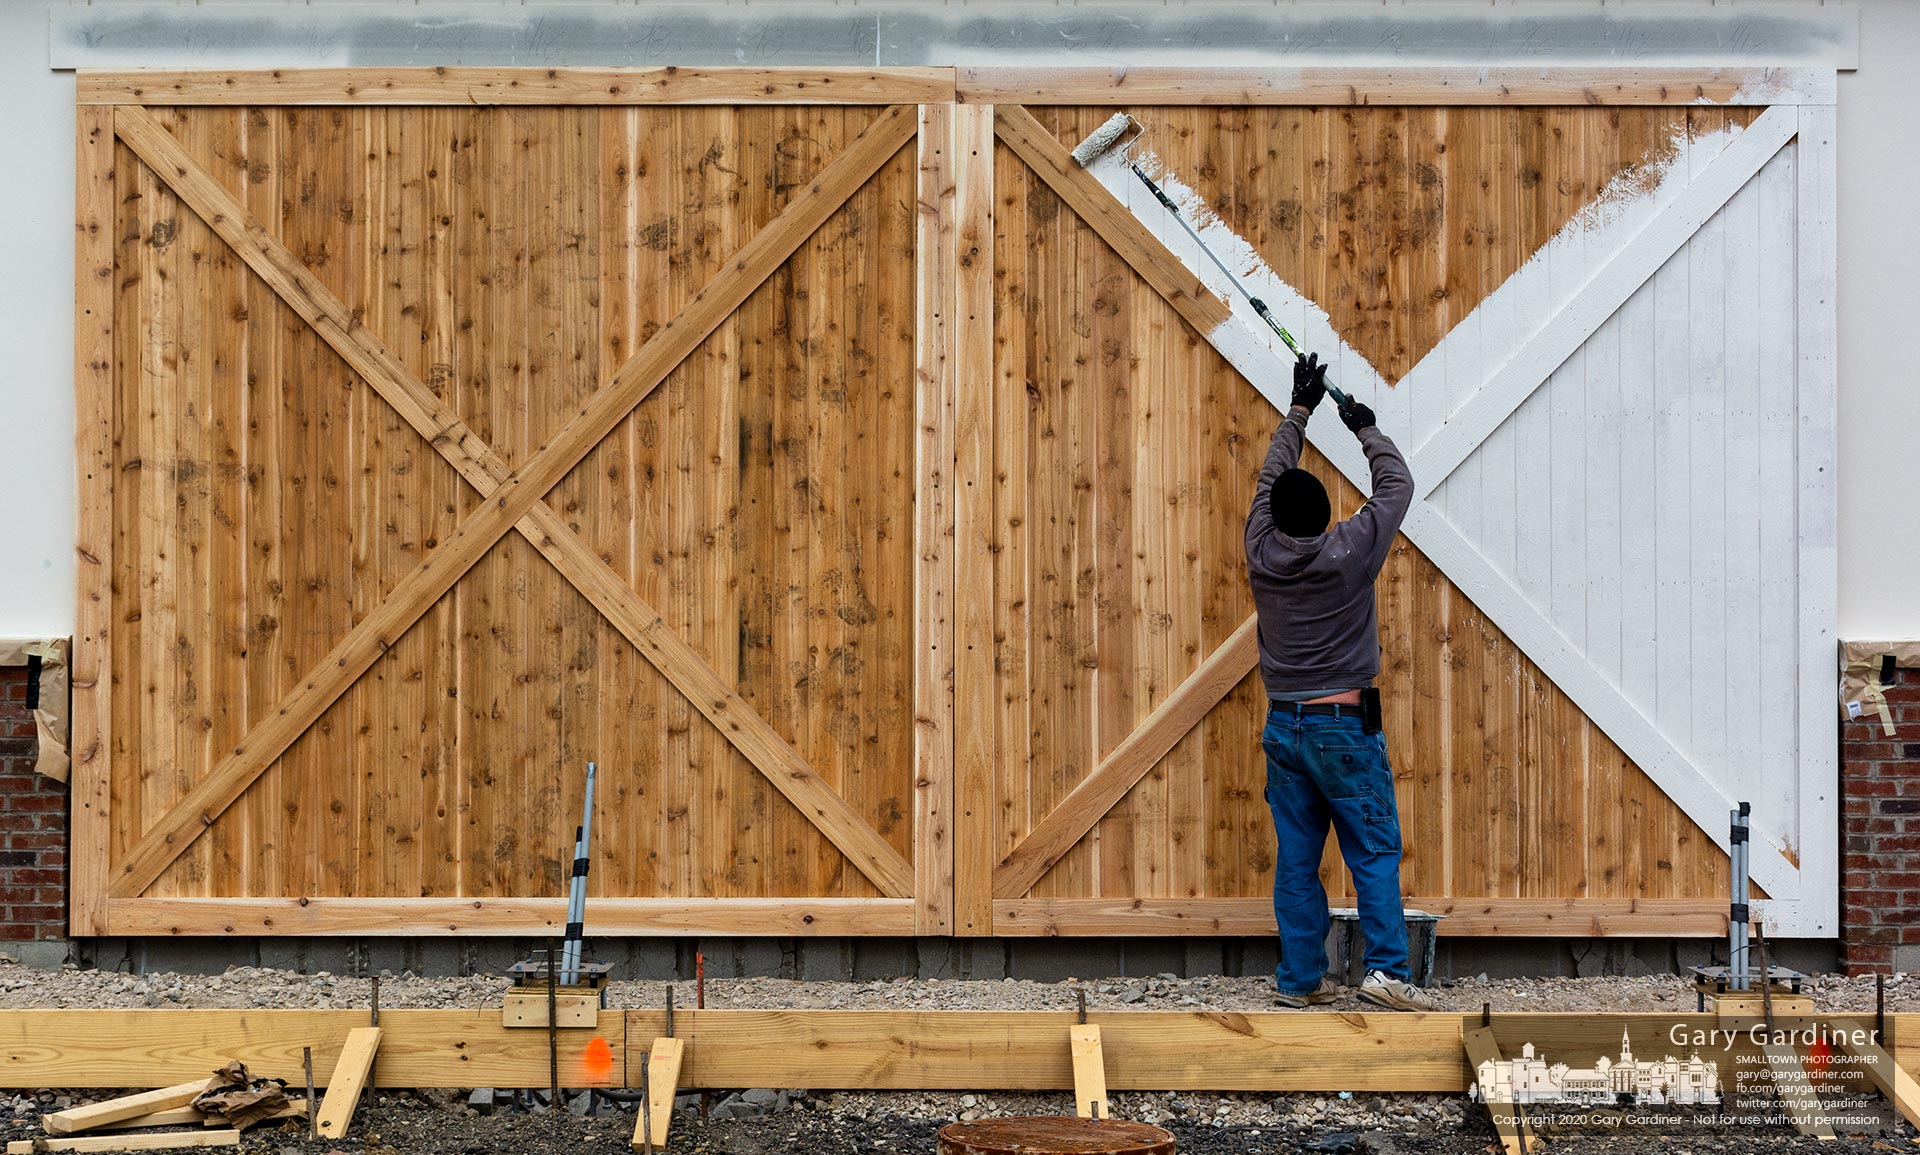 A white coat of paint gets rolled onto the faux barn door on the side of the new carwash being built in the parking lot of West Park Plaza on Huber Village BNlvd. My Final Photo for Nov. 20, 2020.